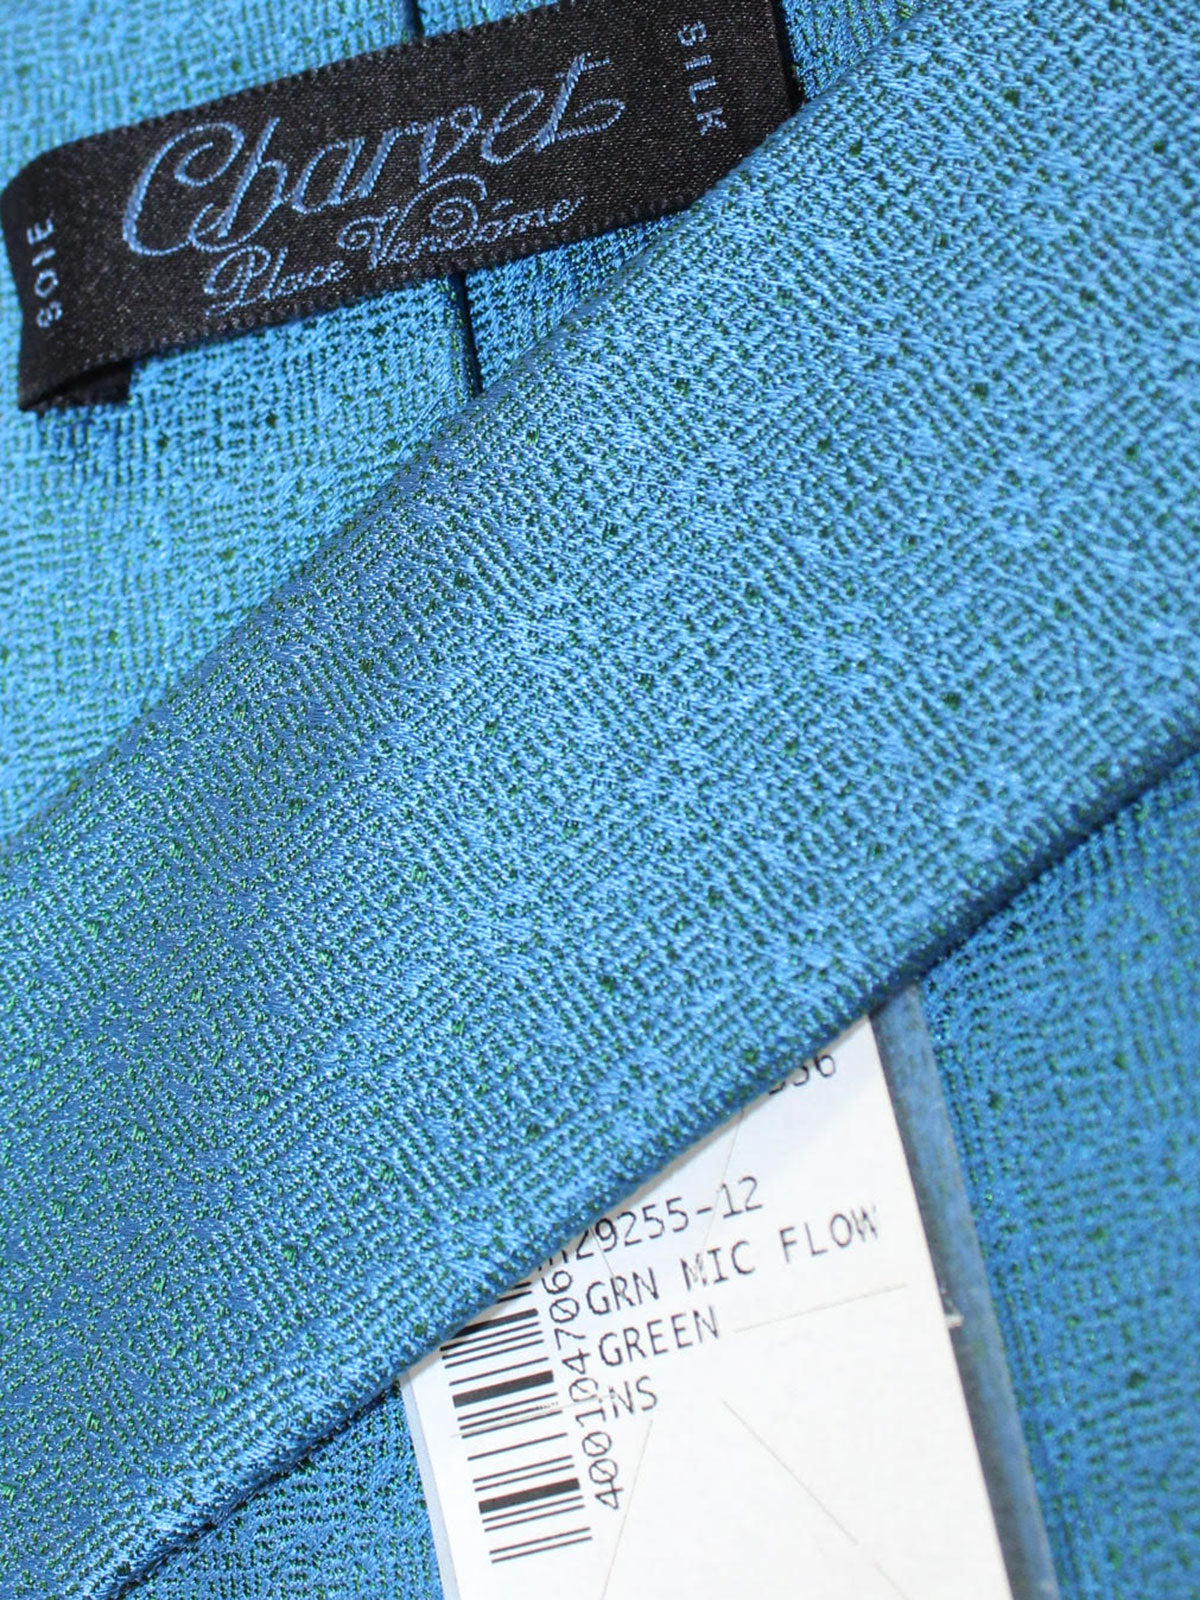 Charvet Paris Tie Blue Design